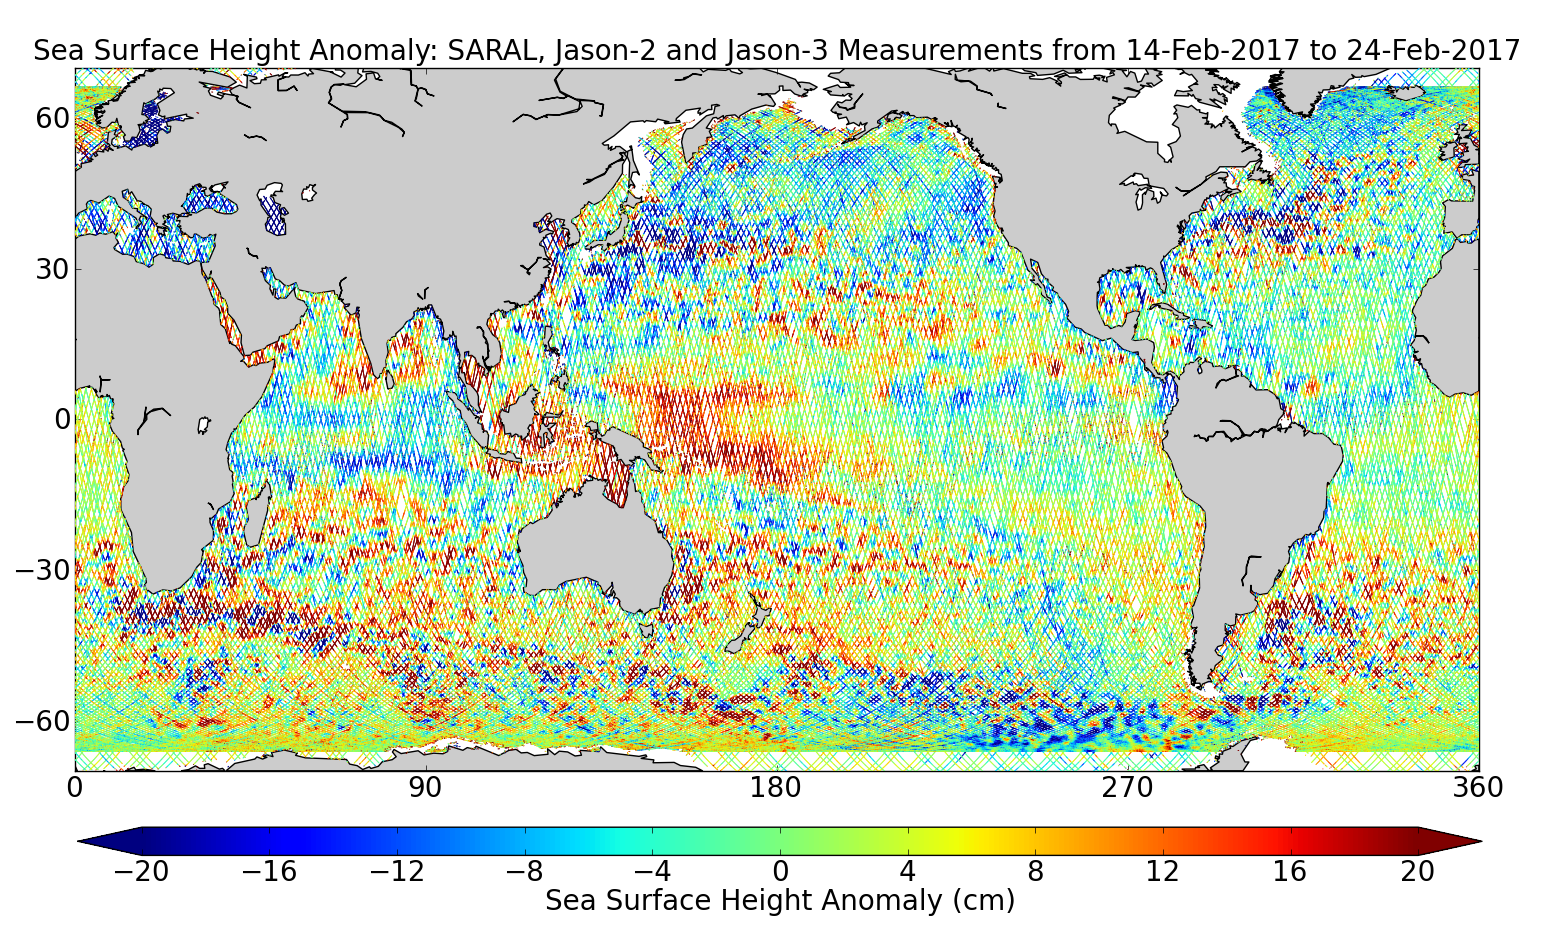 Sea Surface Height Anomaly: SARAL, Jason-2 and Jason-3 Measurements from 14-Feb-2017 to 24-Feb-2017